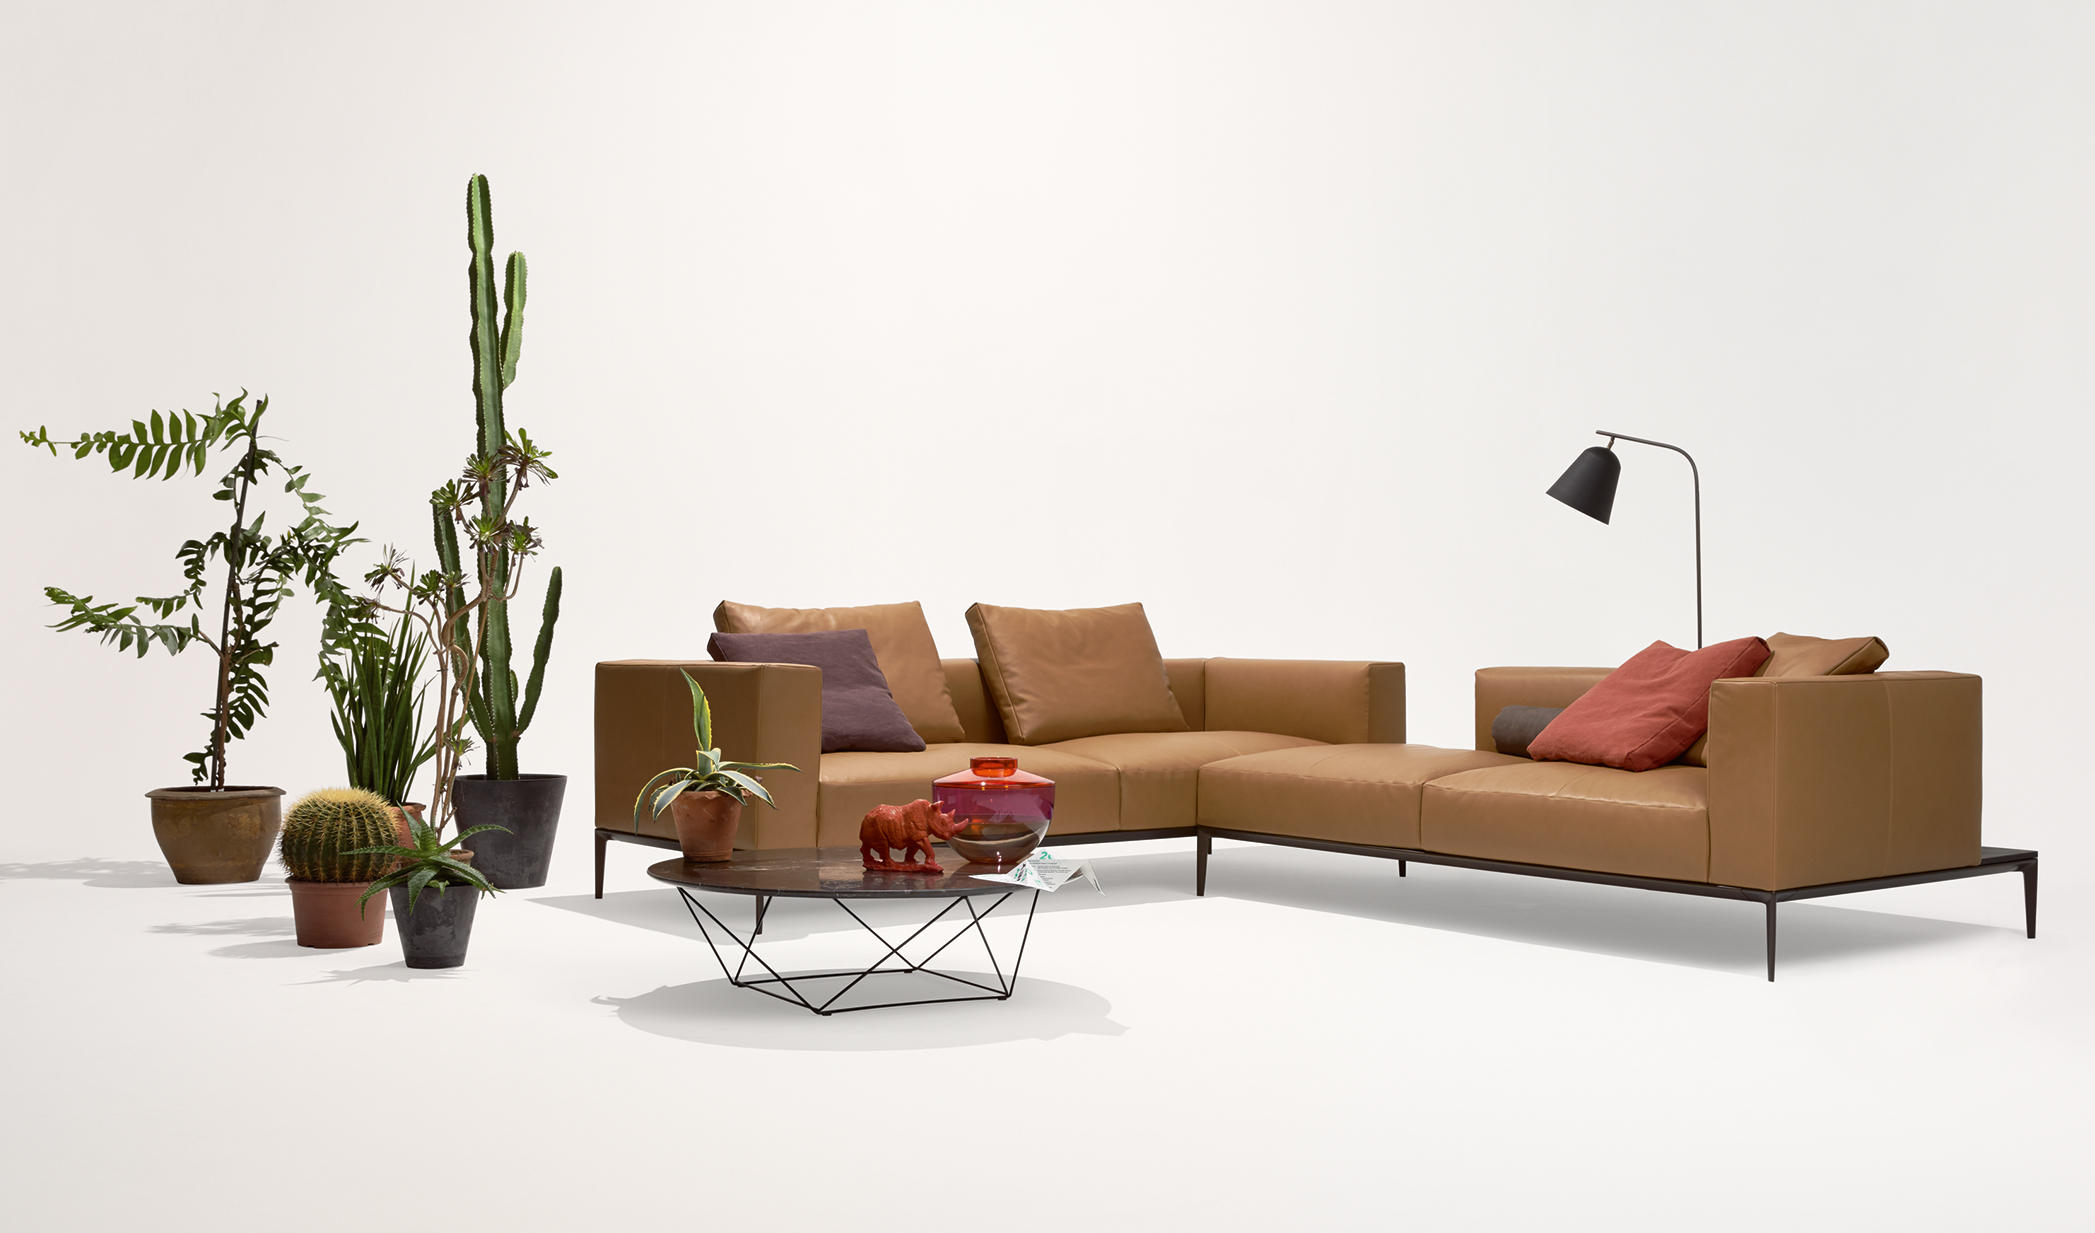 jaan living sofa modulare sitzgruppen von walter knoll architonic. Black Bedroom Furniture Sets. Home Design Ideas